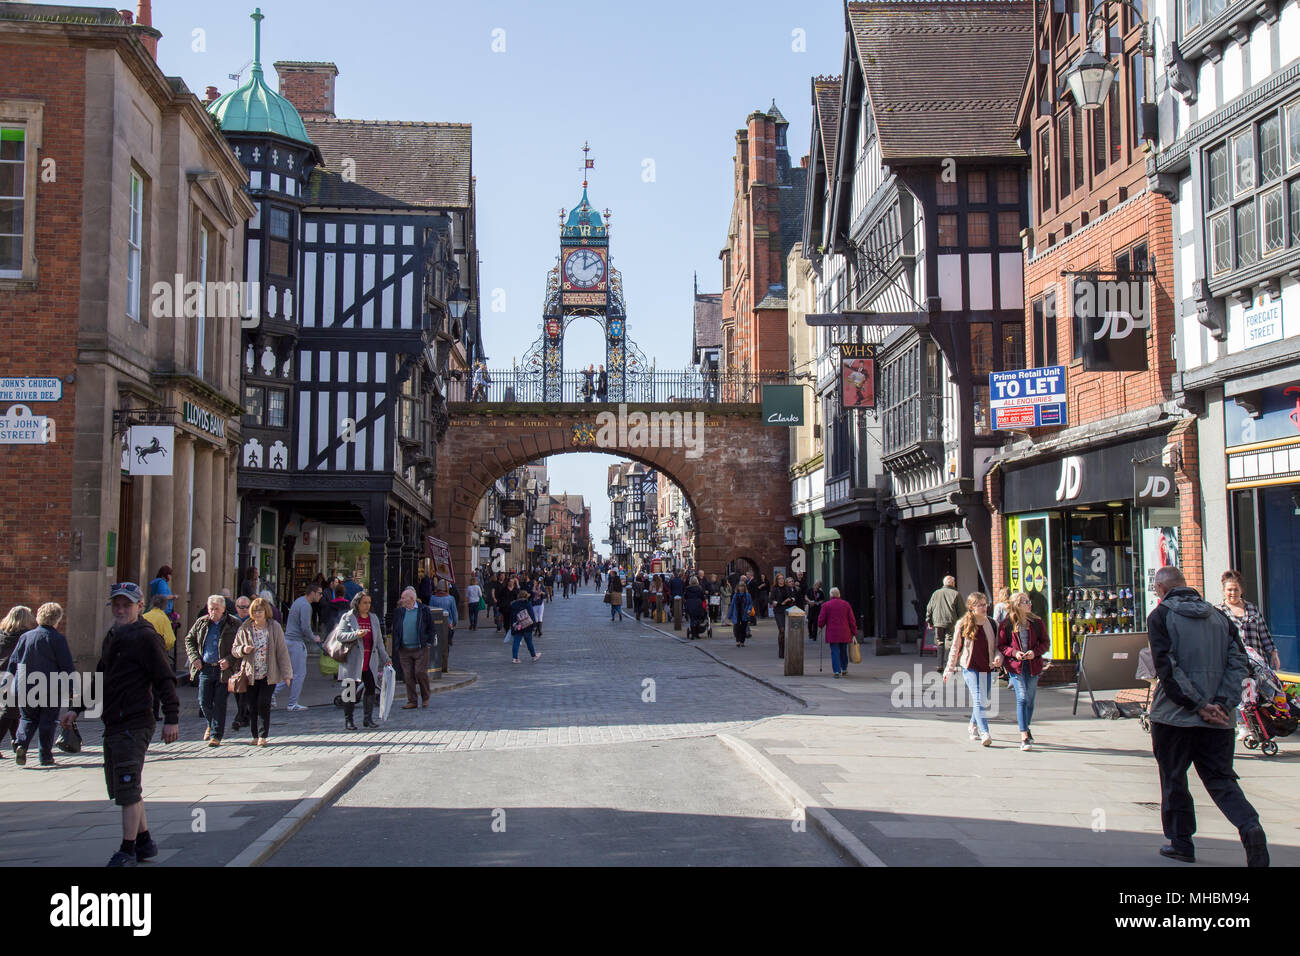 The Eastgate and Eastgate Clock on Eastgate Street - part of the walled city of Chester Stock Photo